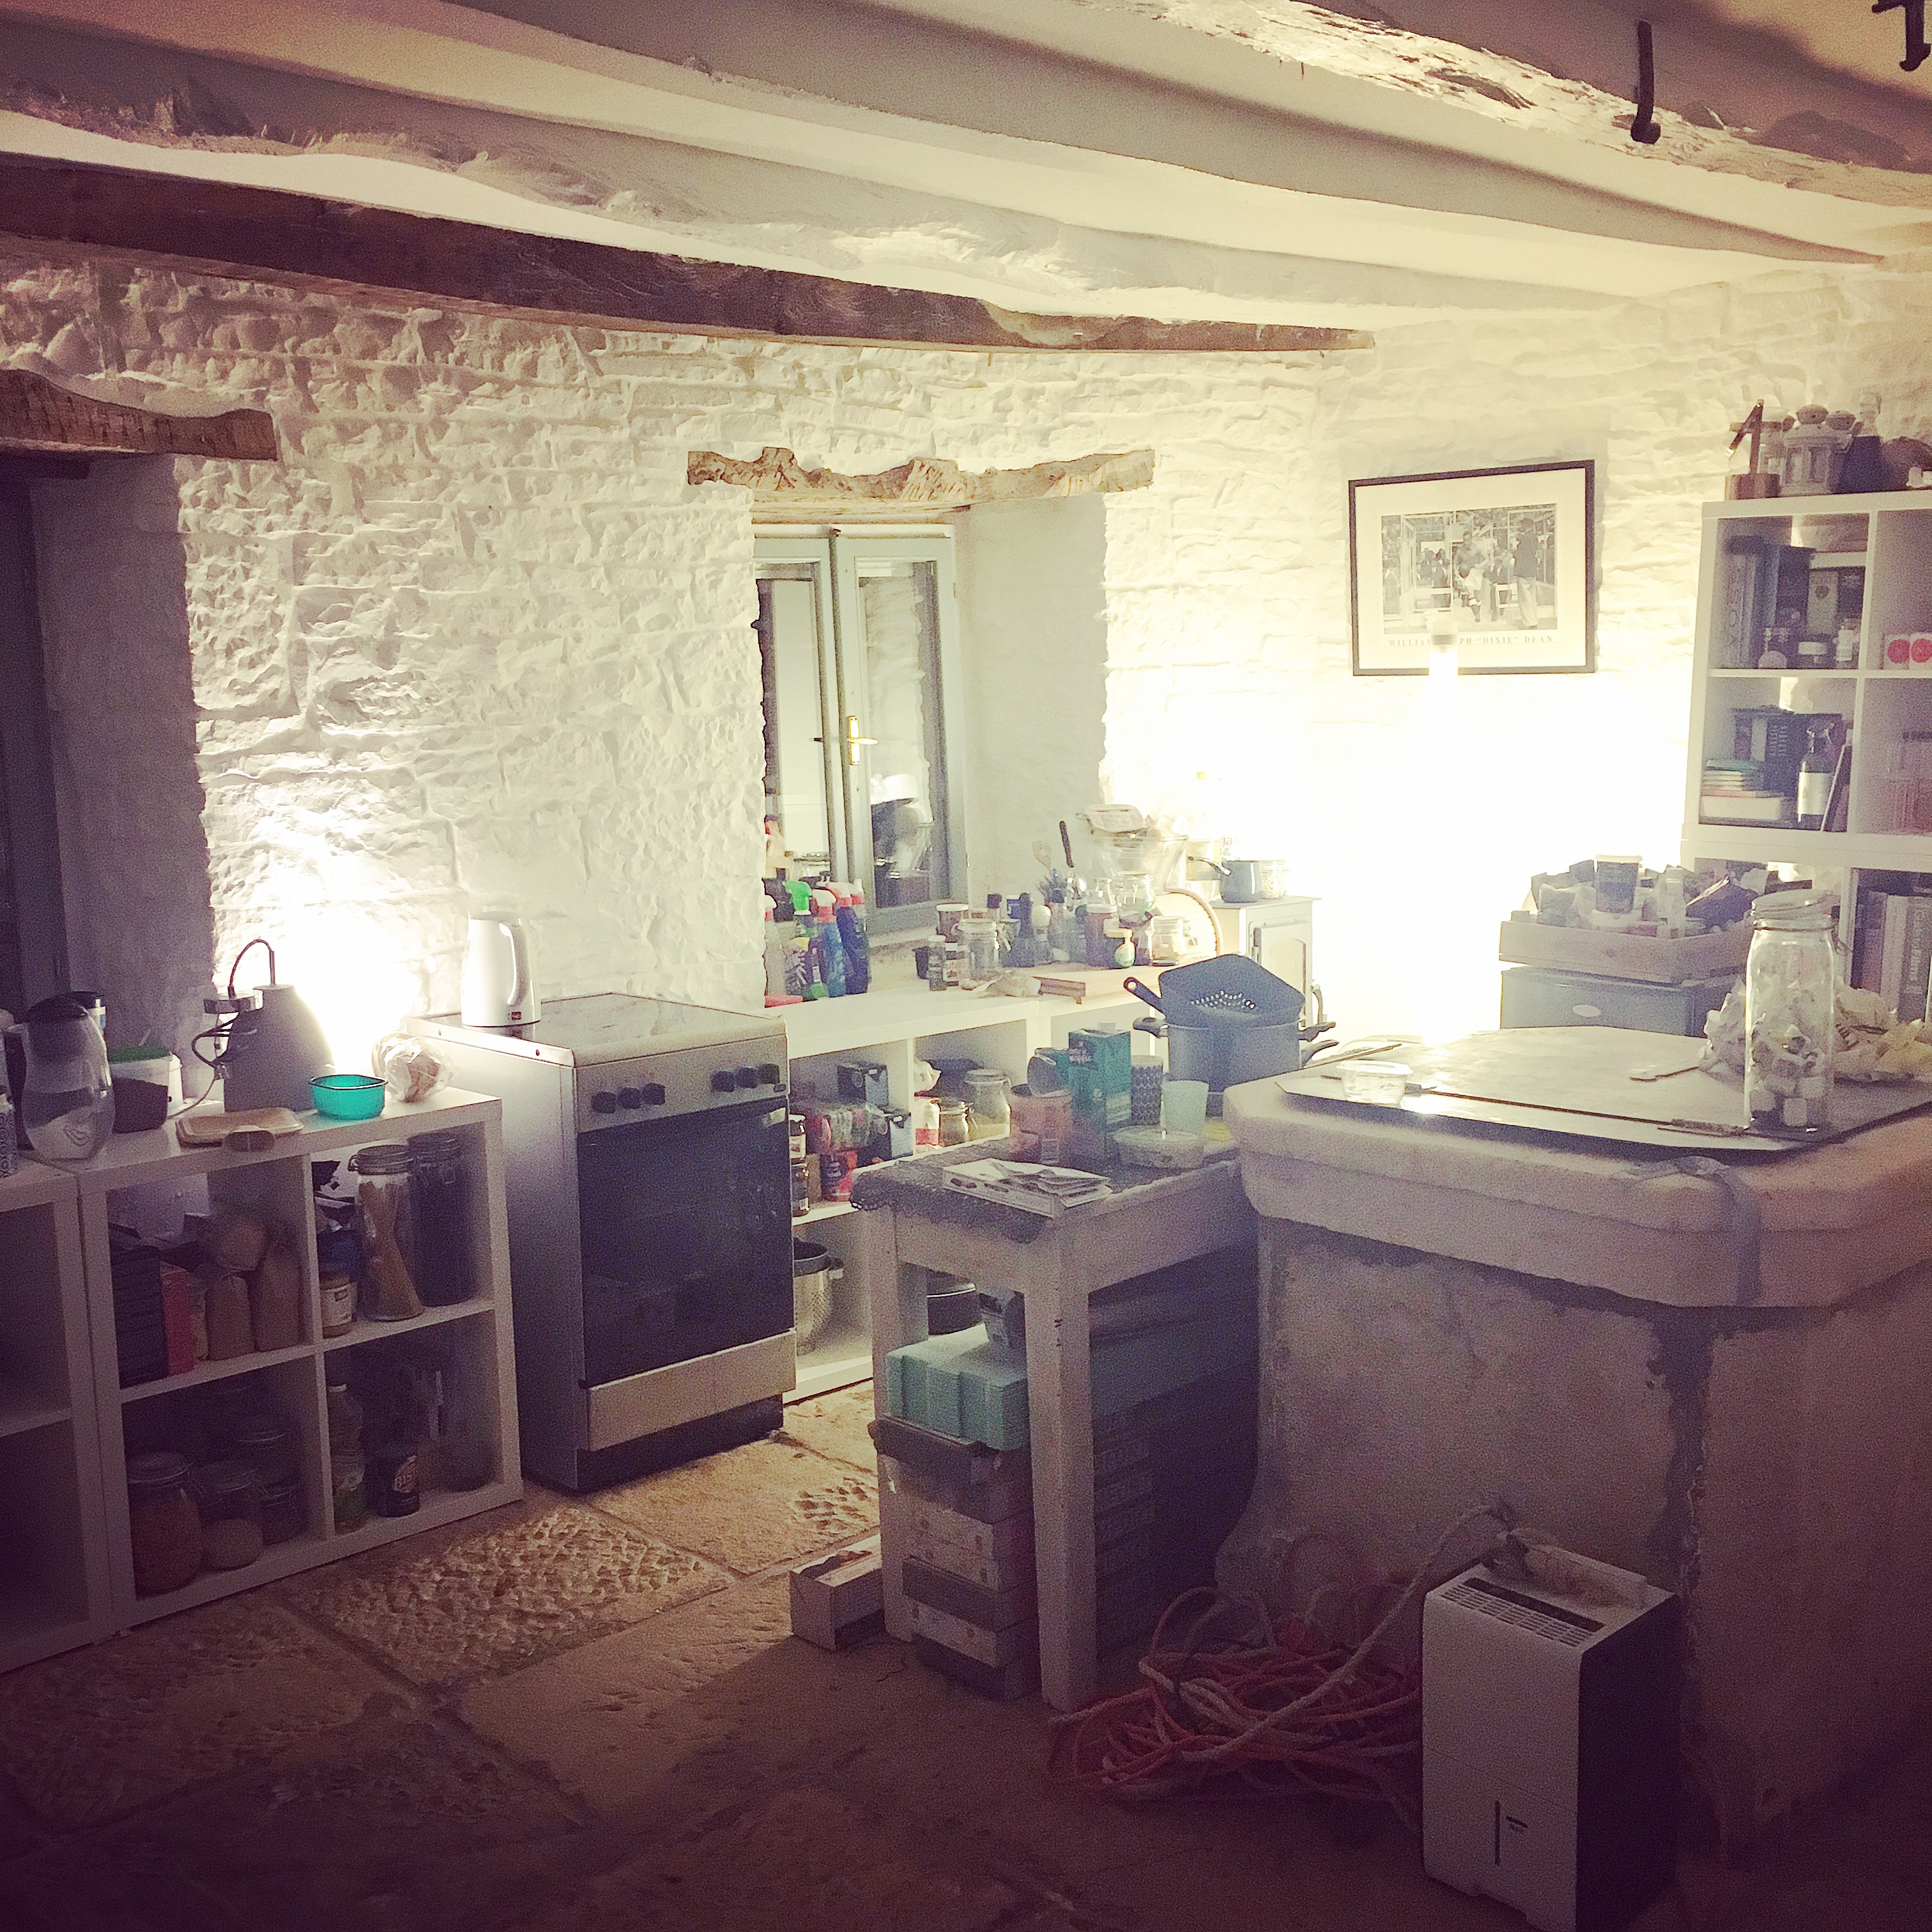 The Well Room / Kitchen